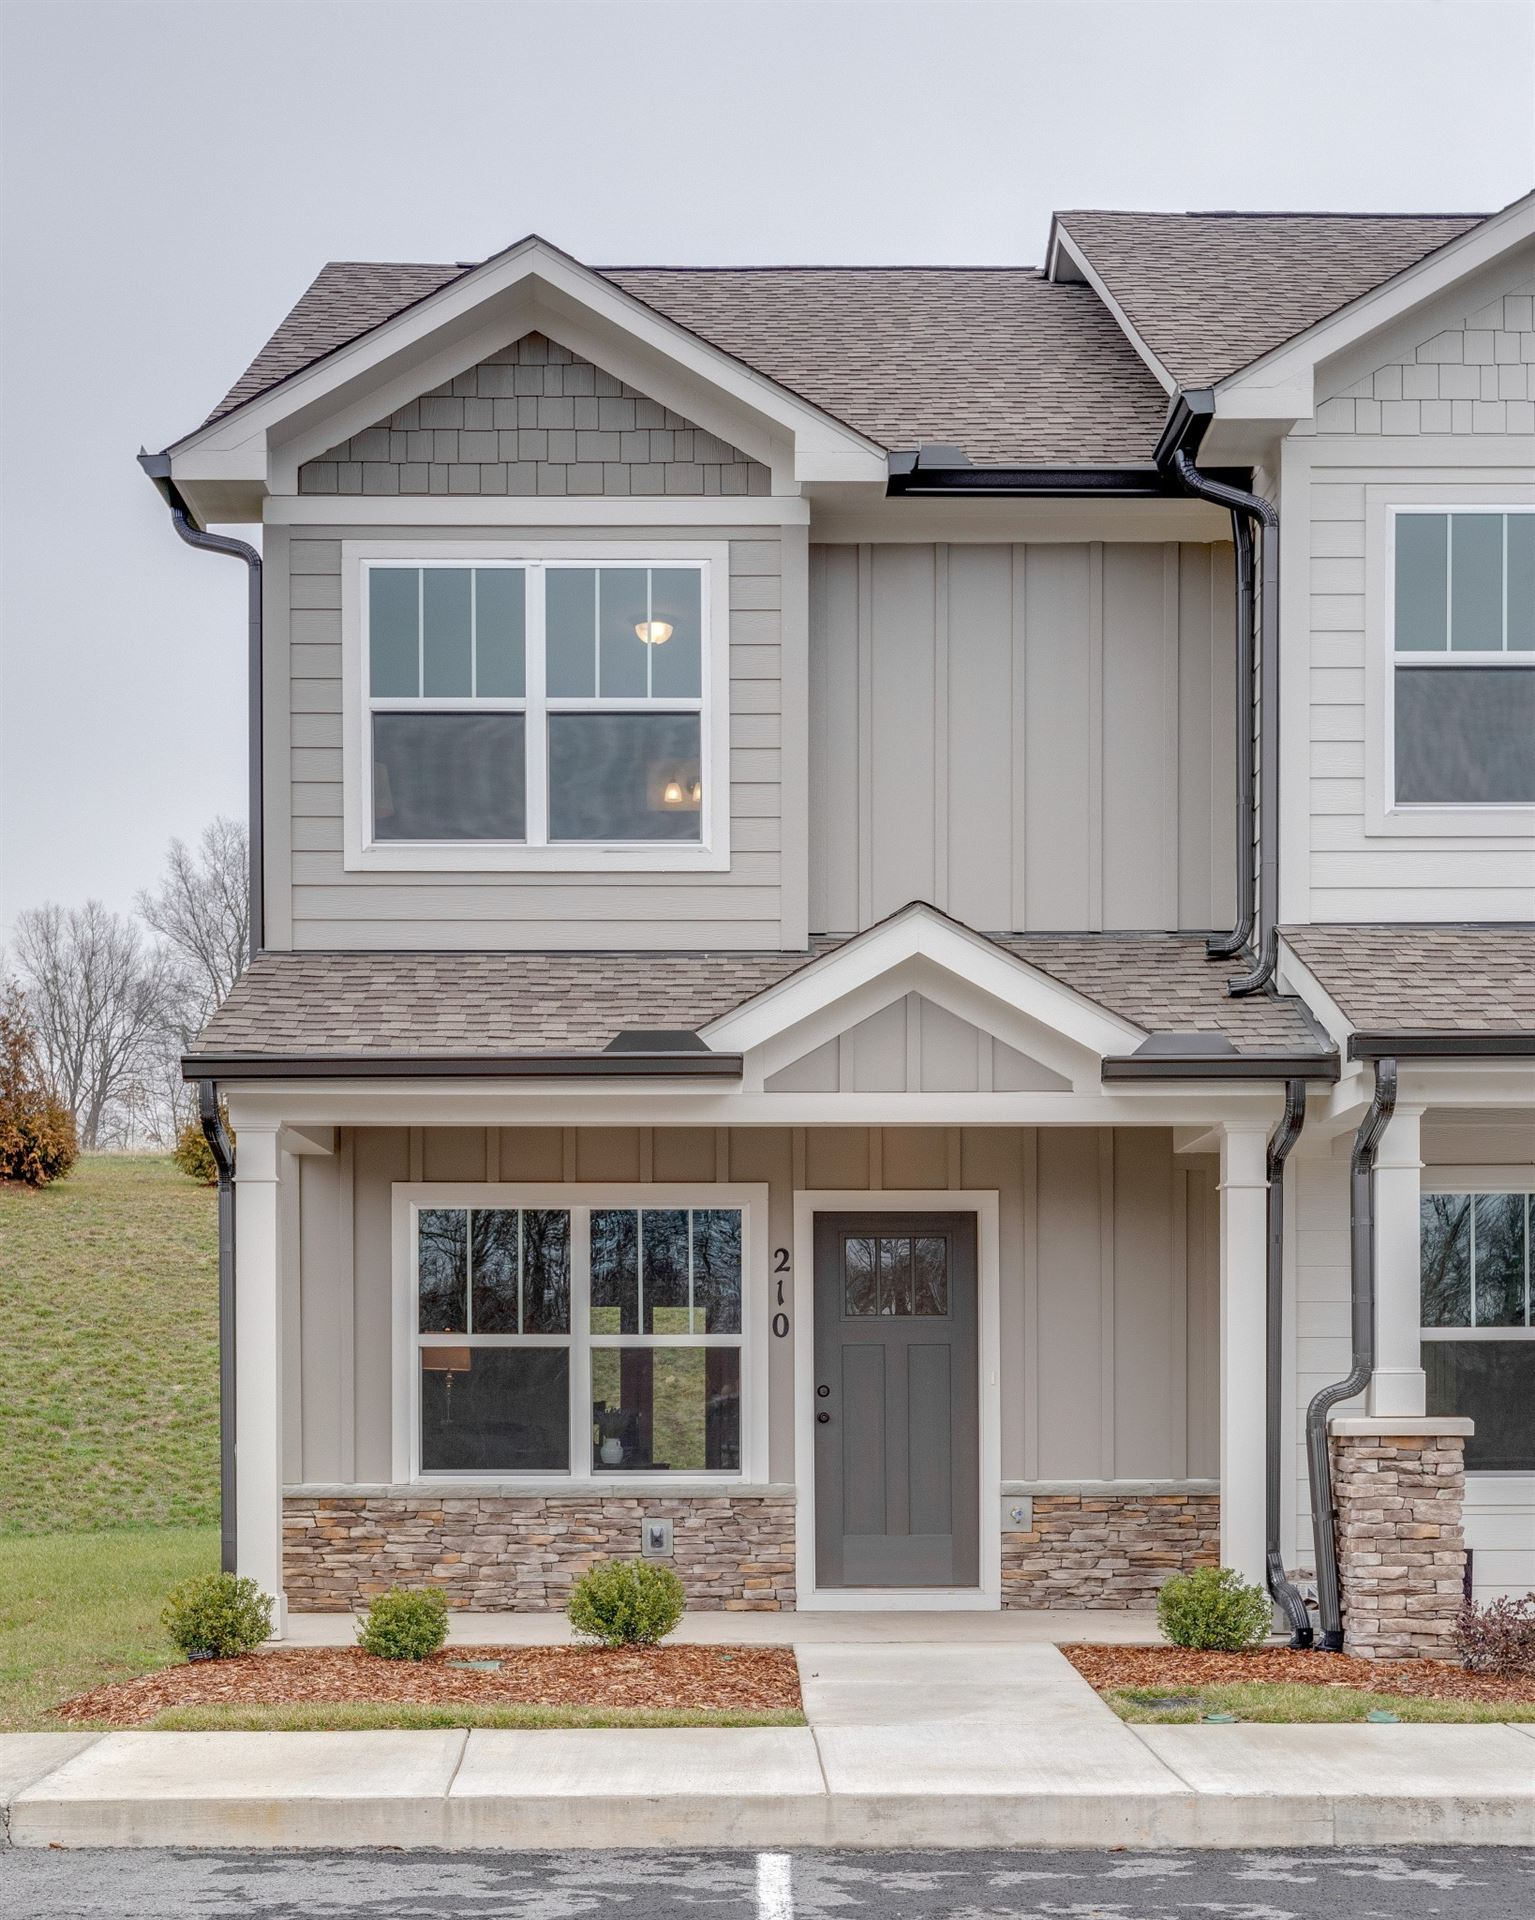 507 Bell Forge Ct, White Bluff, TN 37187 - MLS#: 2164833